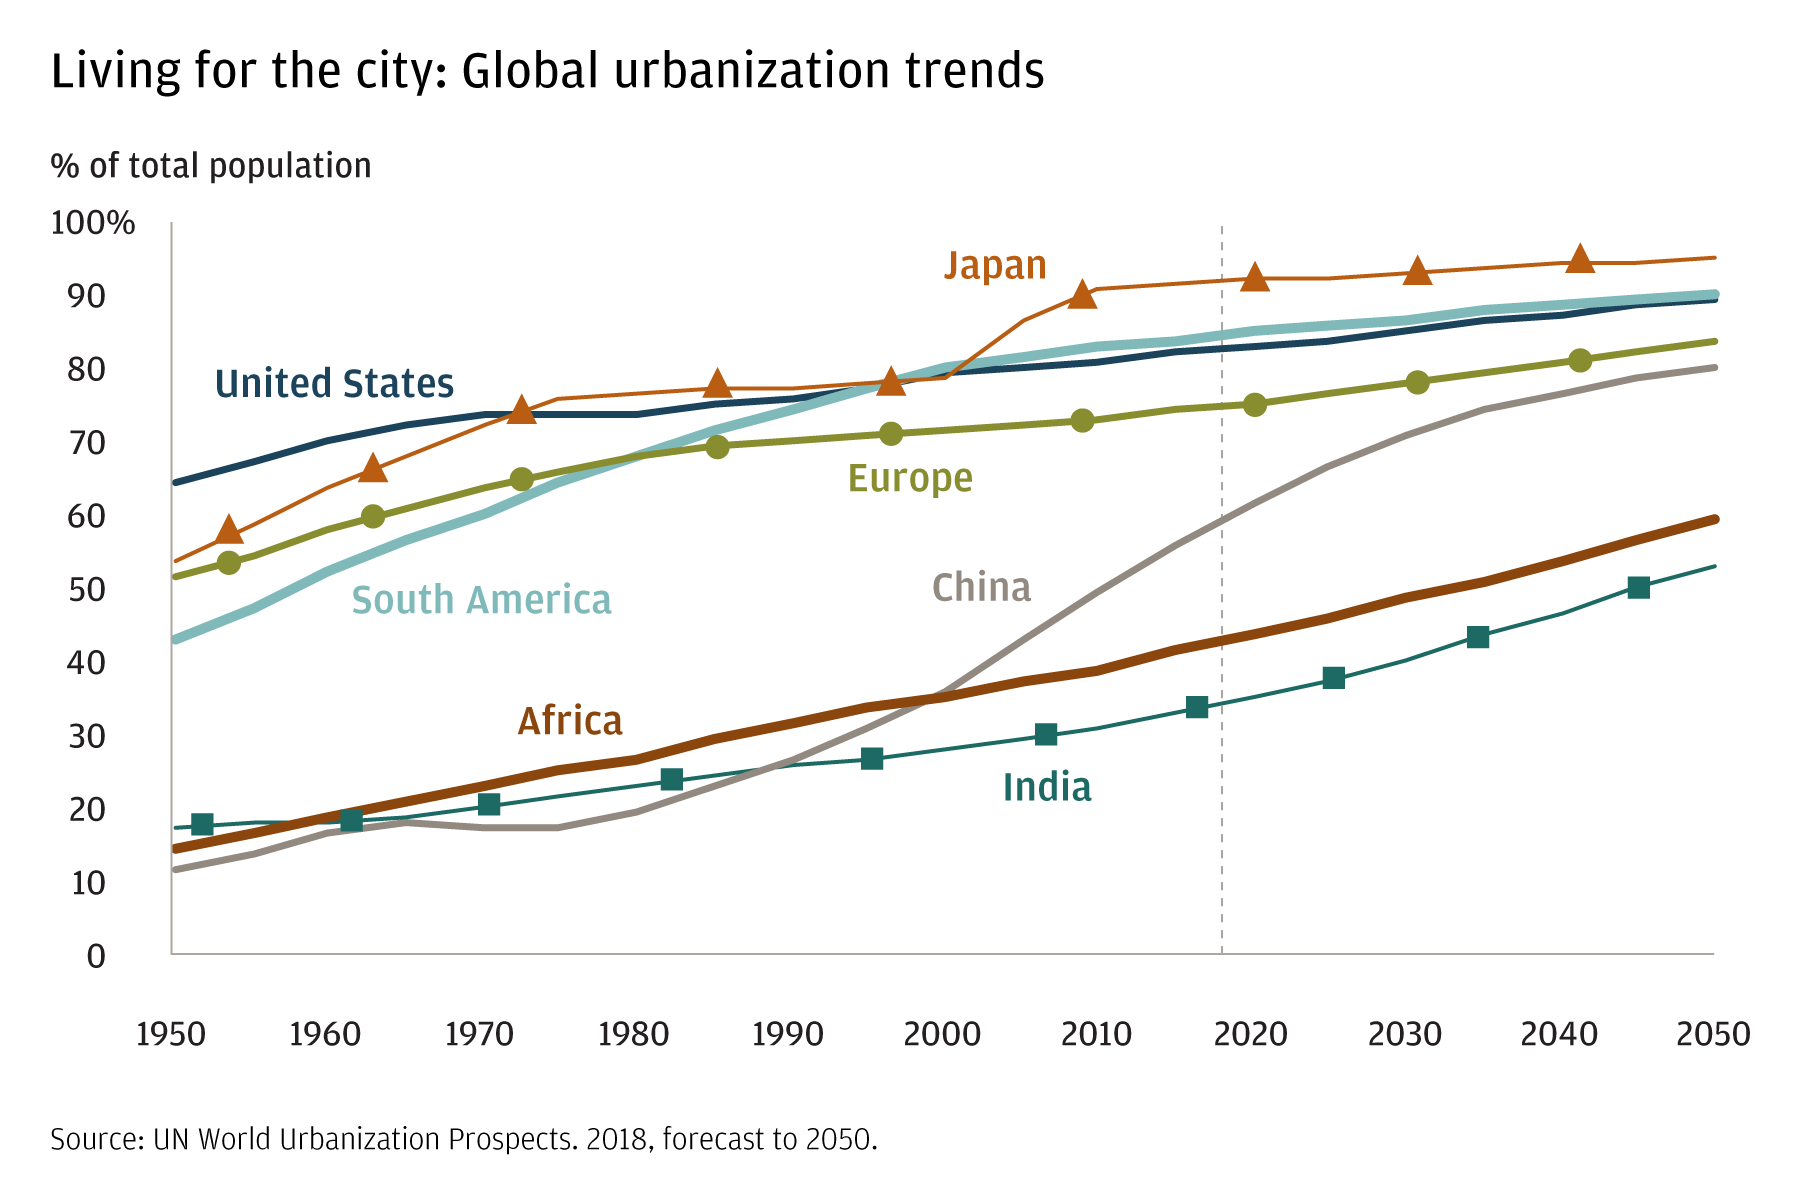 This chart displays urbanization trends from 1950 to 2050 in the United States, Japan, China, Europe, South America, Africa and India. All areas are increasing, with China's urban population growing most rapidly.